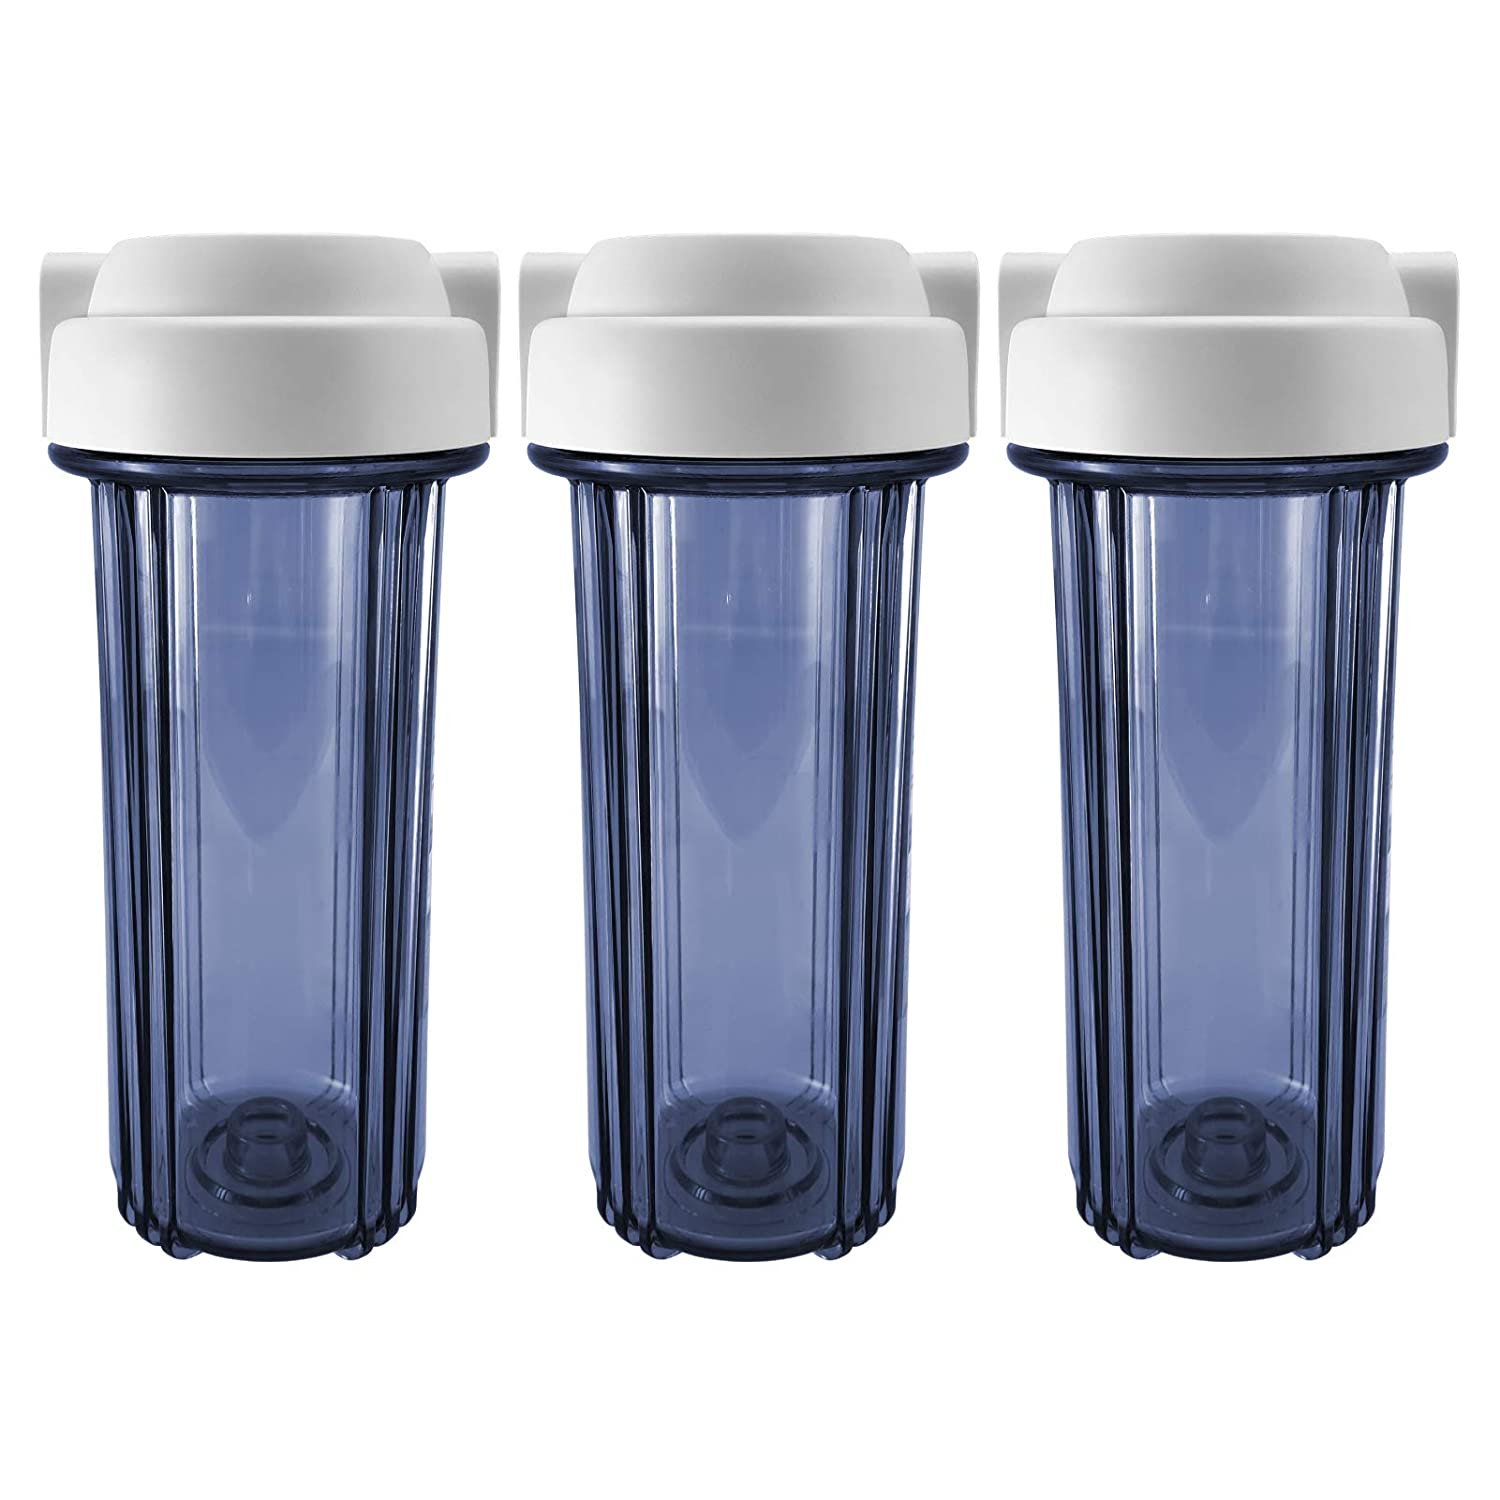 Best Countertop Water Filter 10 Inch Bpa Free - Your Home Life